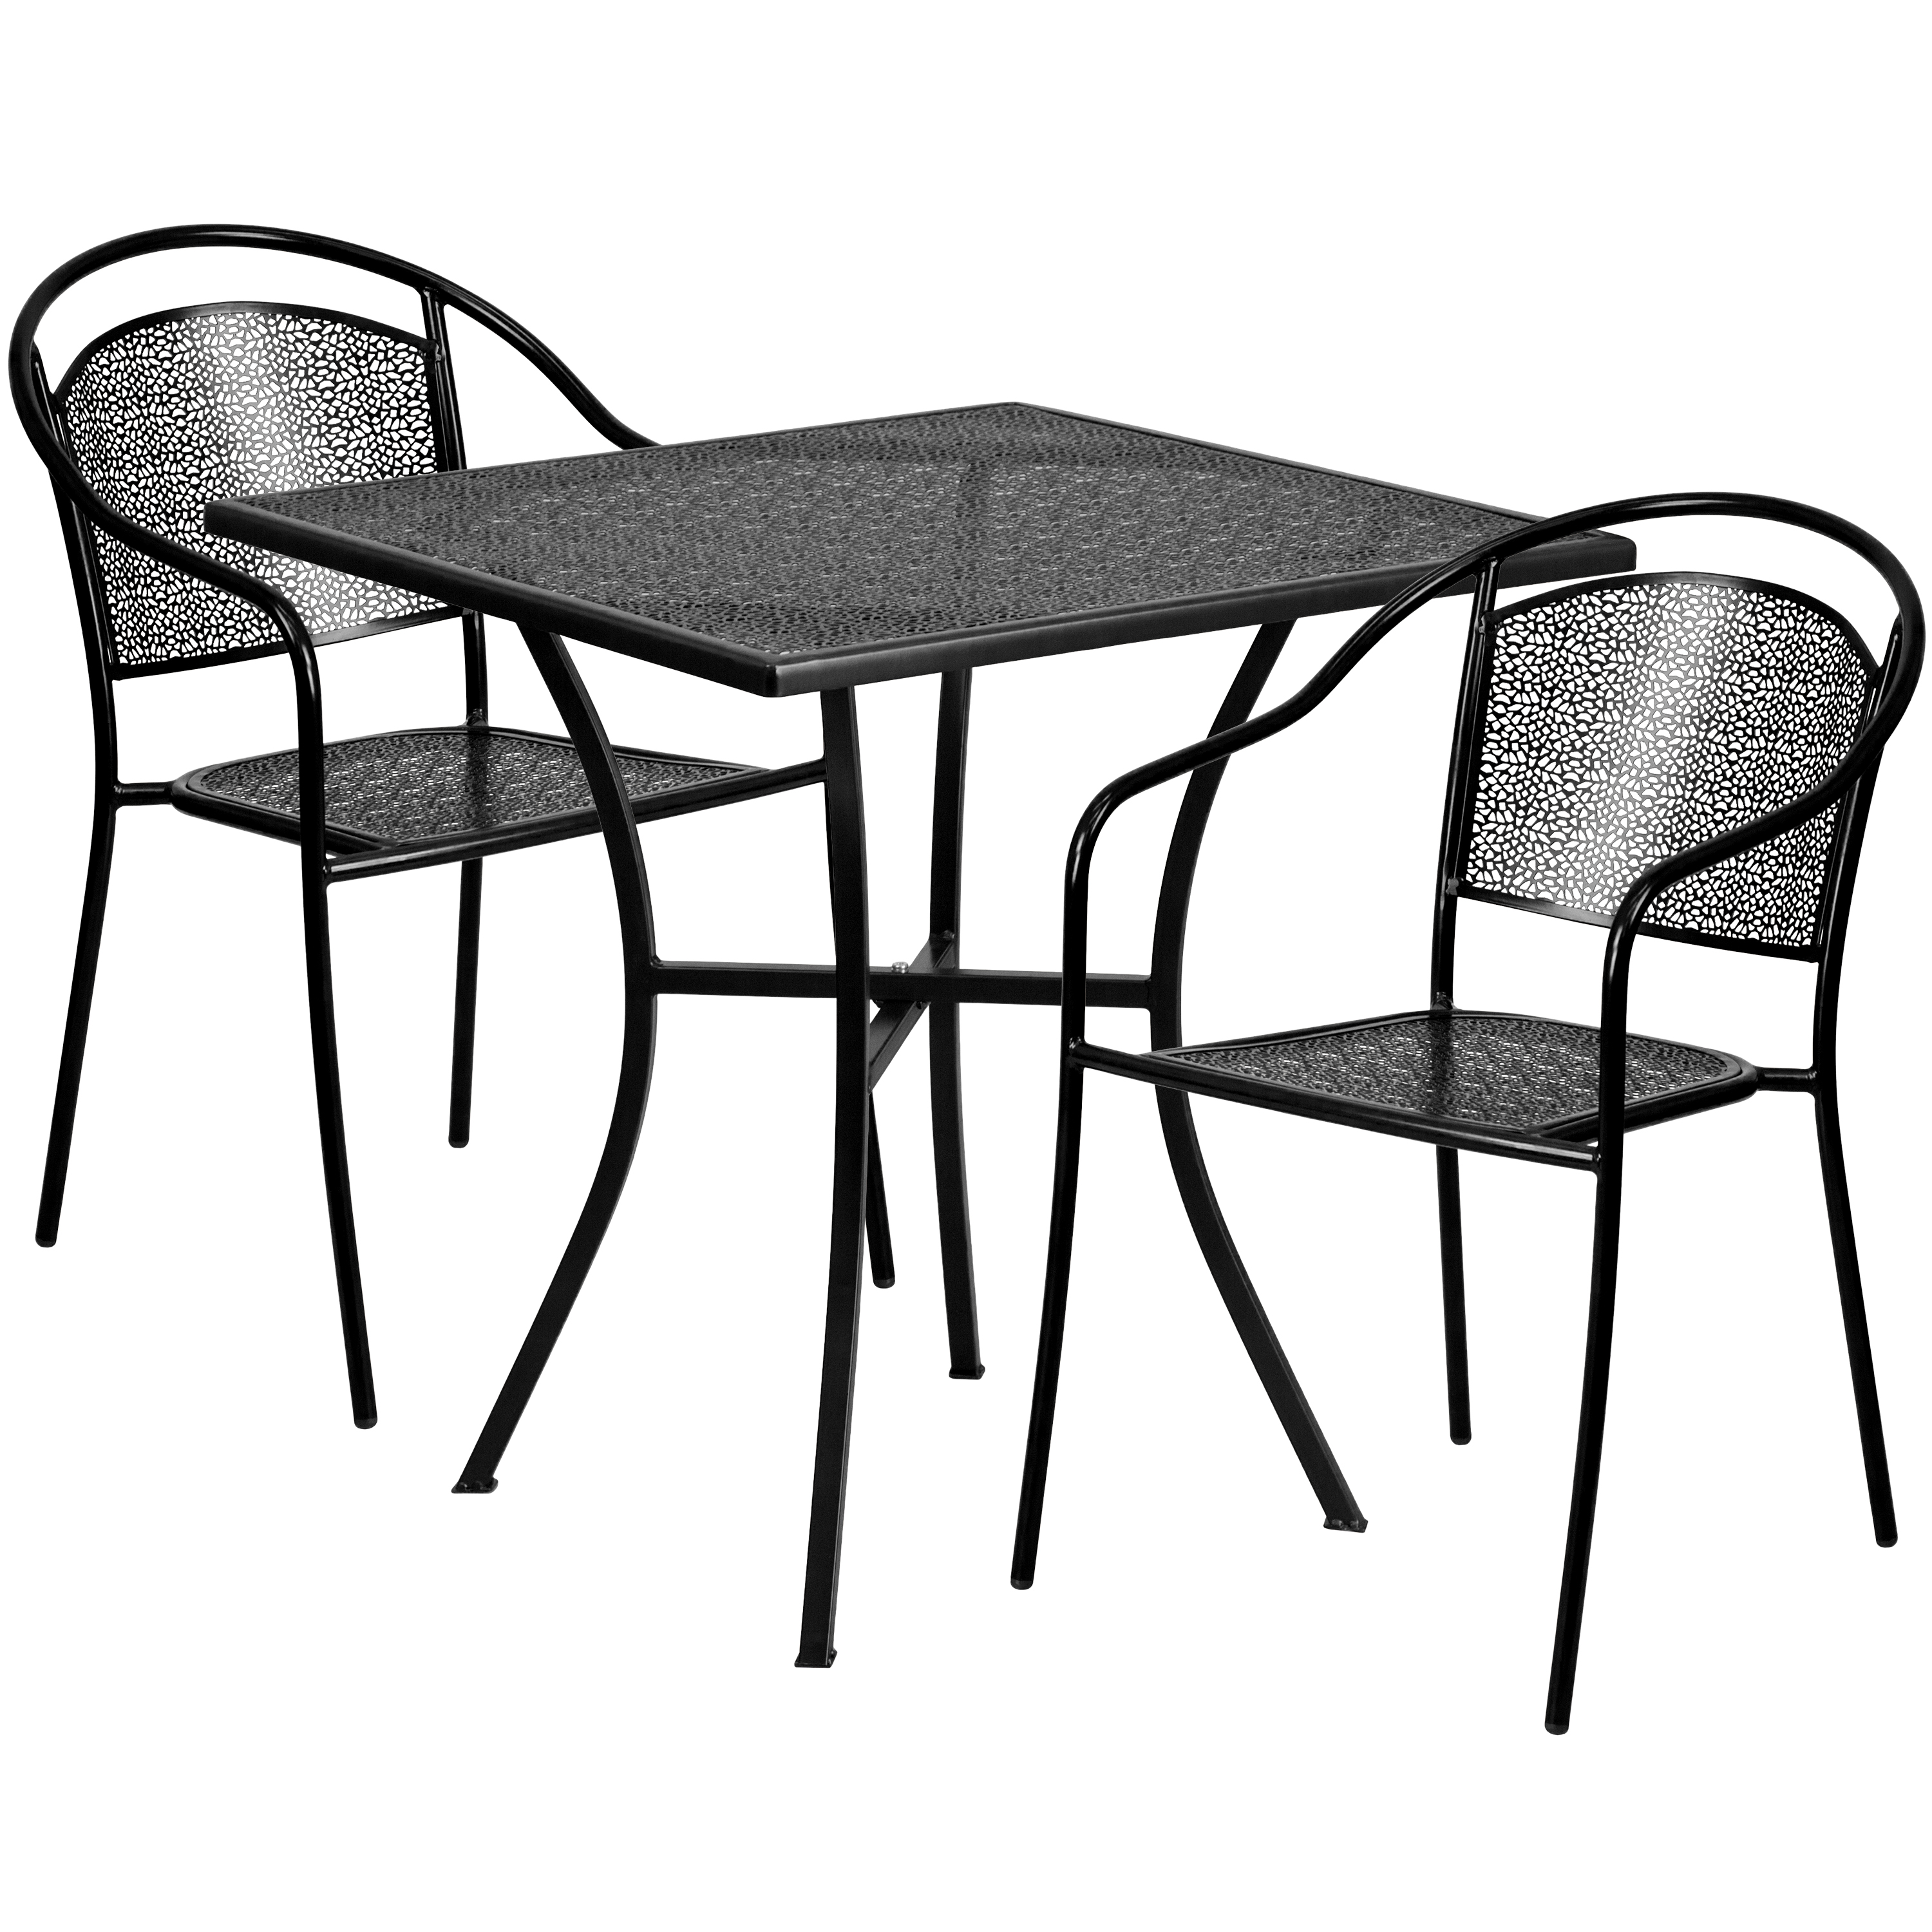 """Flash Furniture 28"""" Square Indoor-Outdoor Steel Patio Table Set with 2 Round Back Chairs, Multiple Colors"""